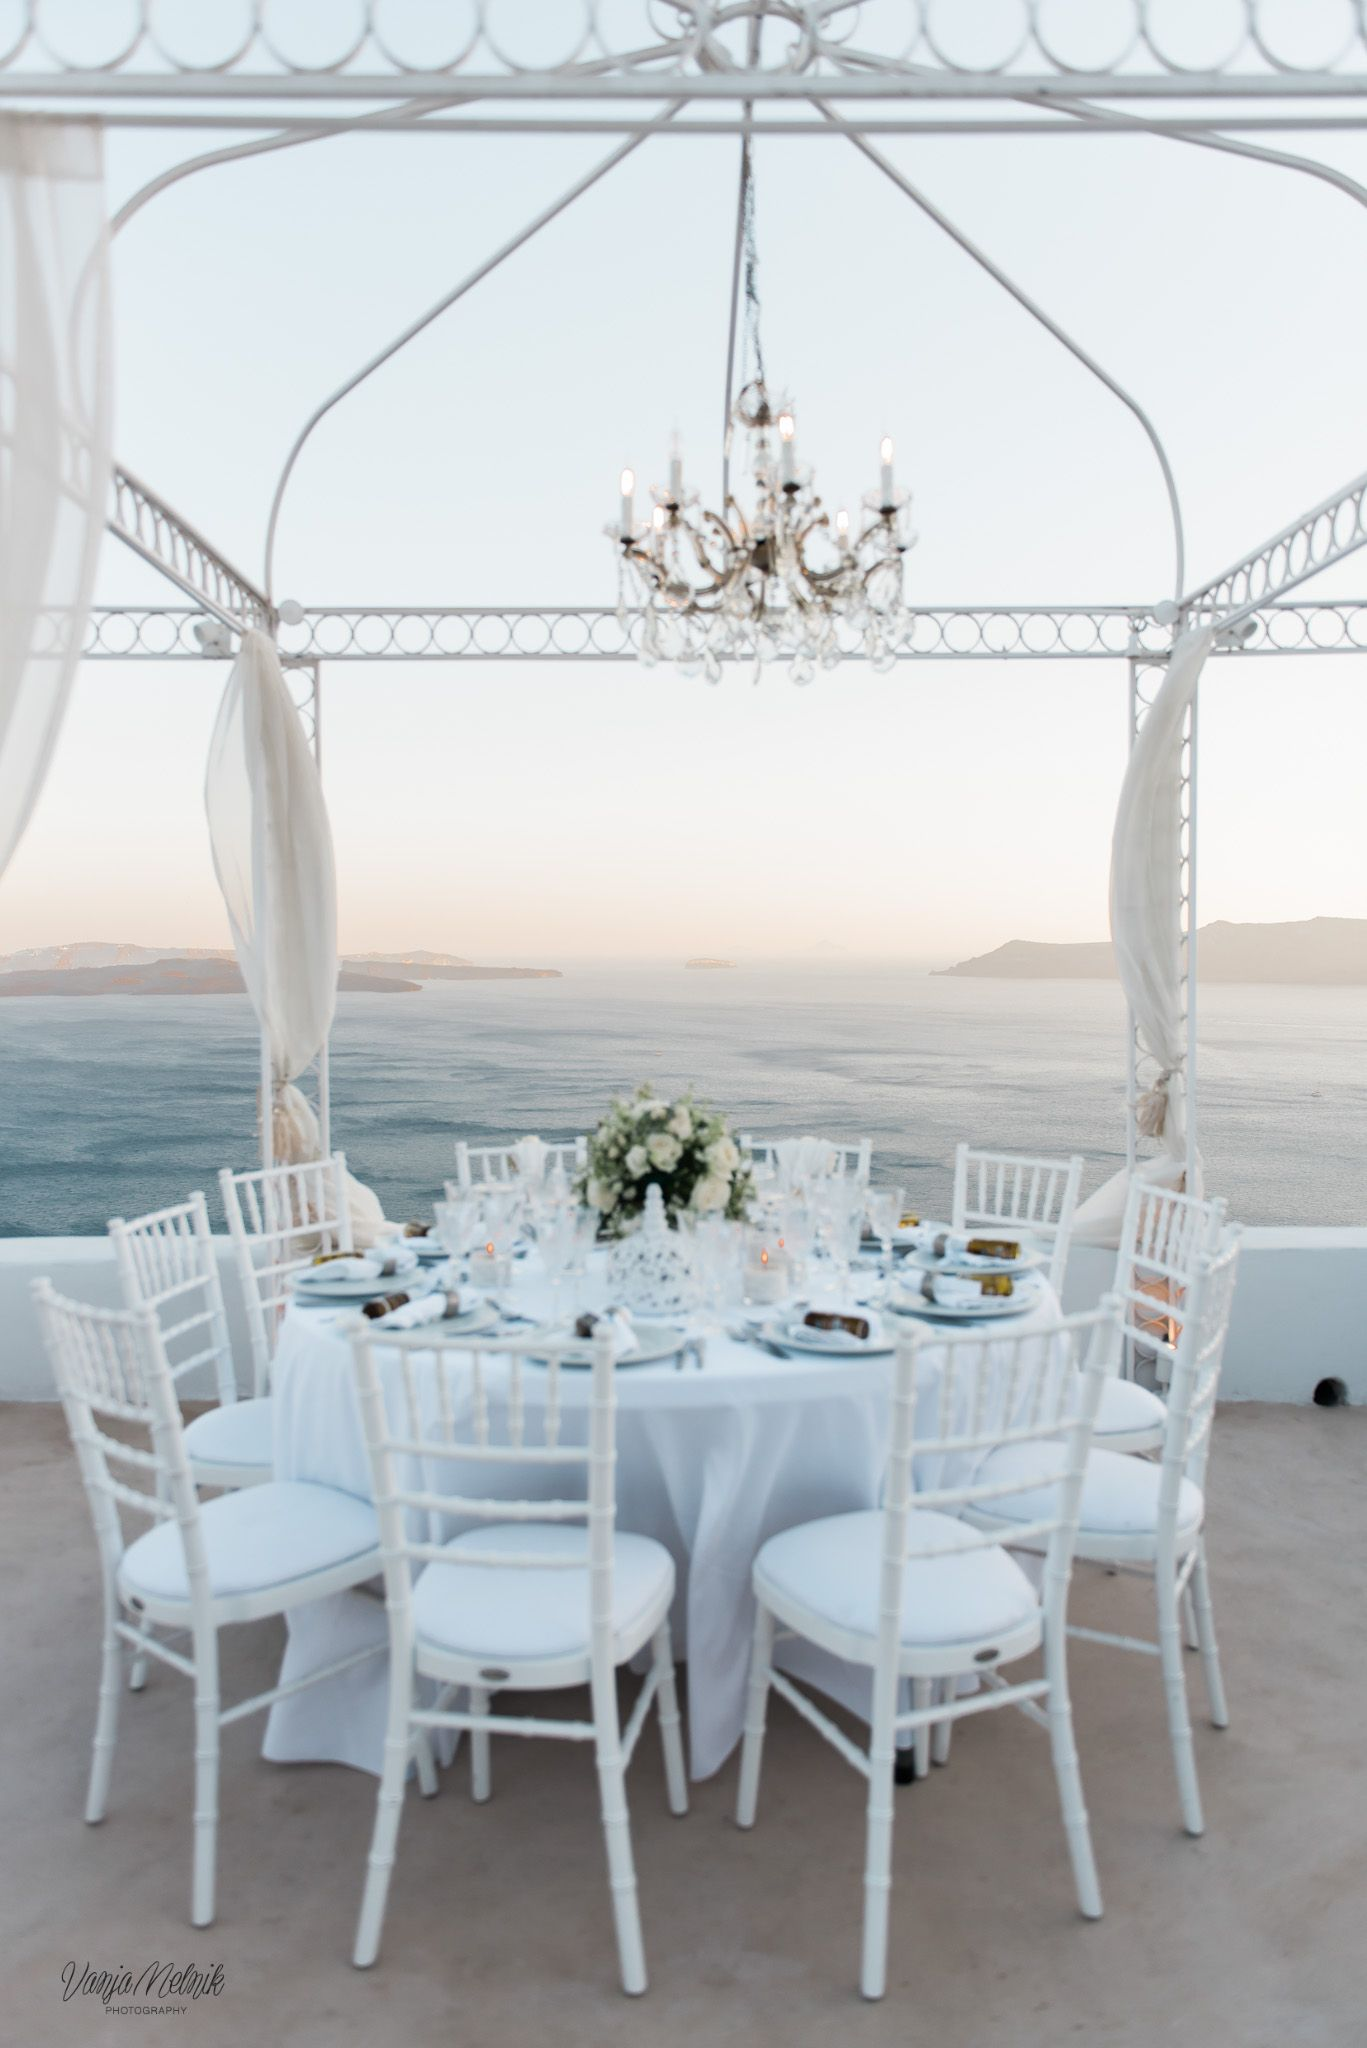 Table plan table design white classic flowers caldera view the diamond rock weddings is based in santorini specialists on events wedding events in santorini island greeceding event planning company in mightylinksfo